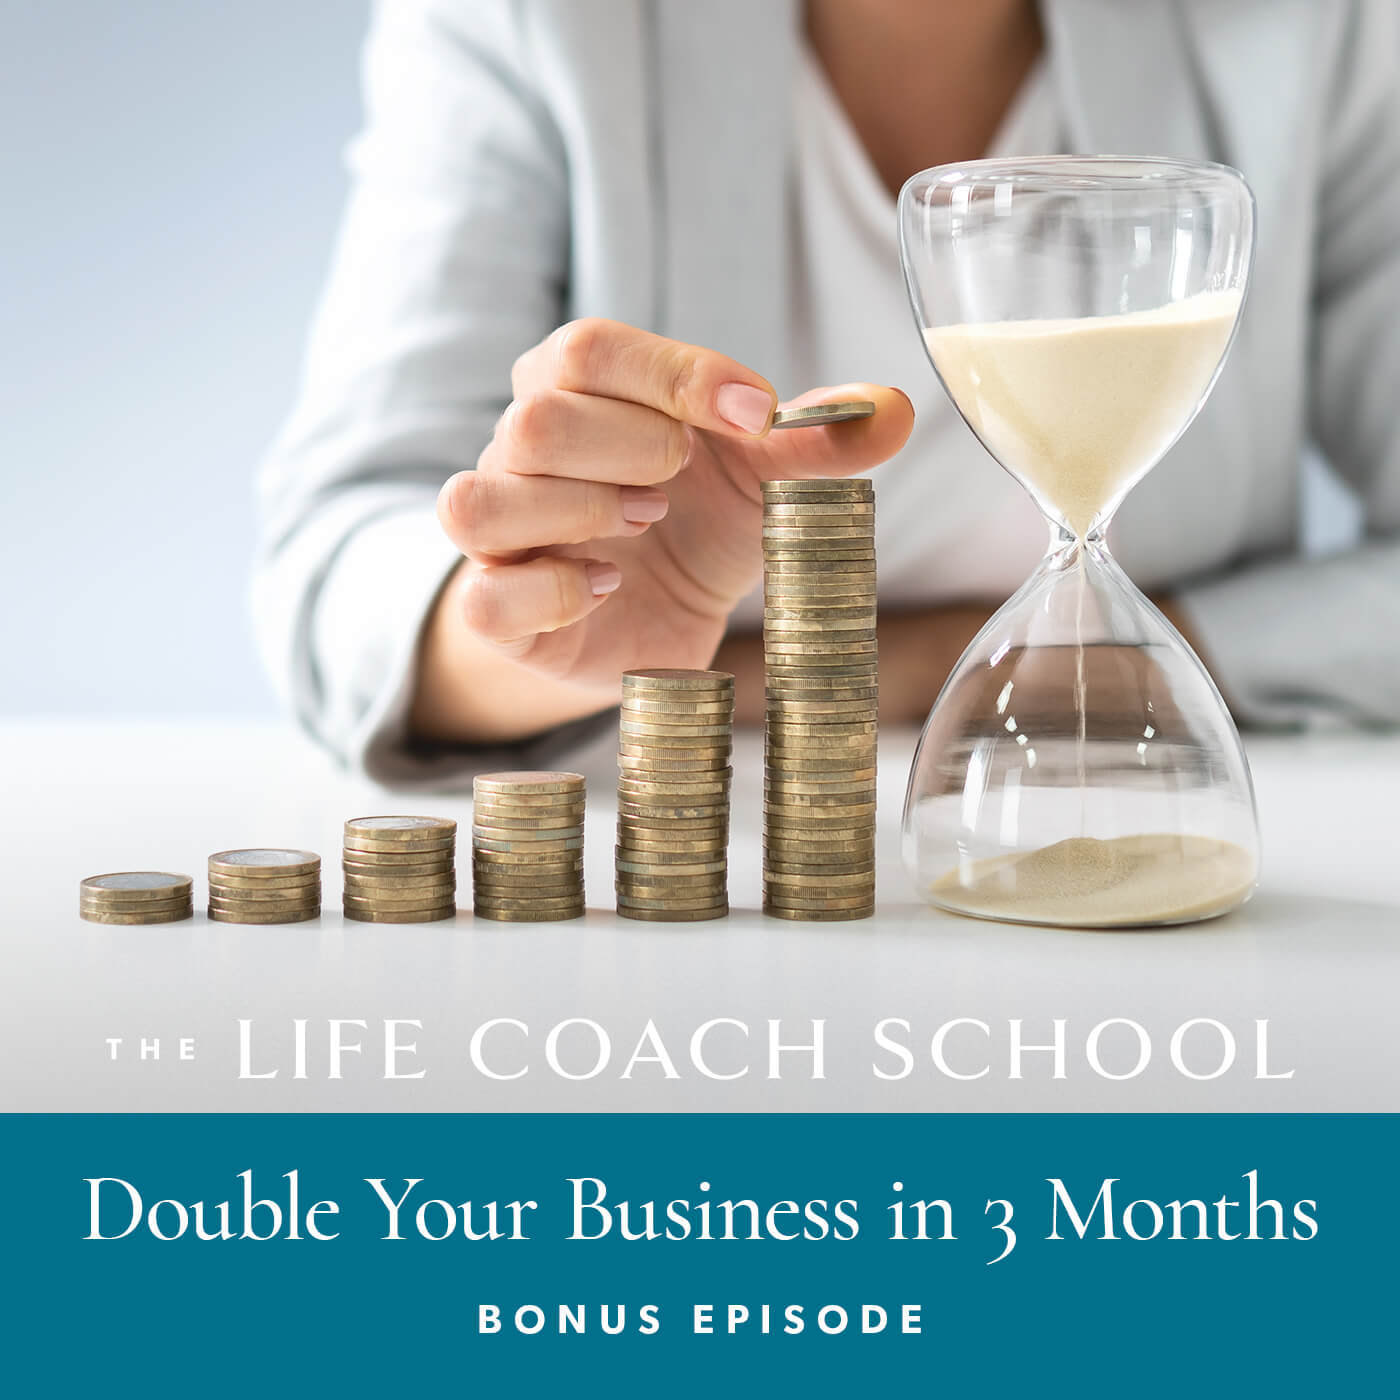 The Life Coach School Podcast with Brooke Castillo | Special Episode | Double Your Business in 3 Months